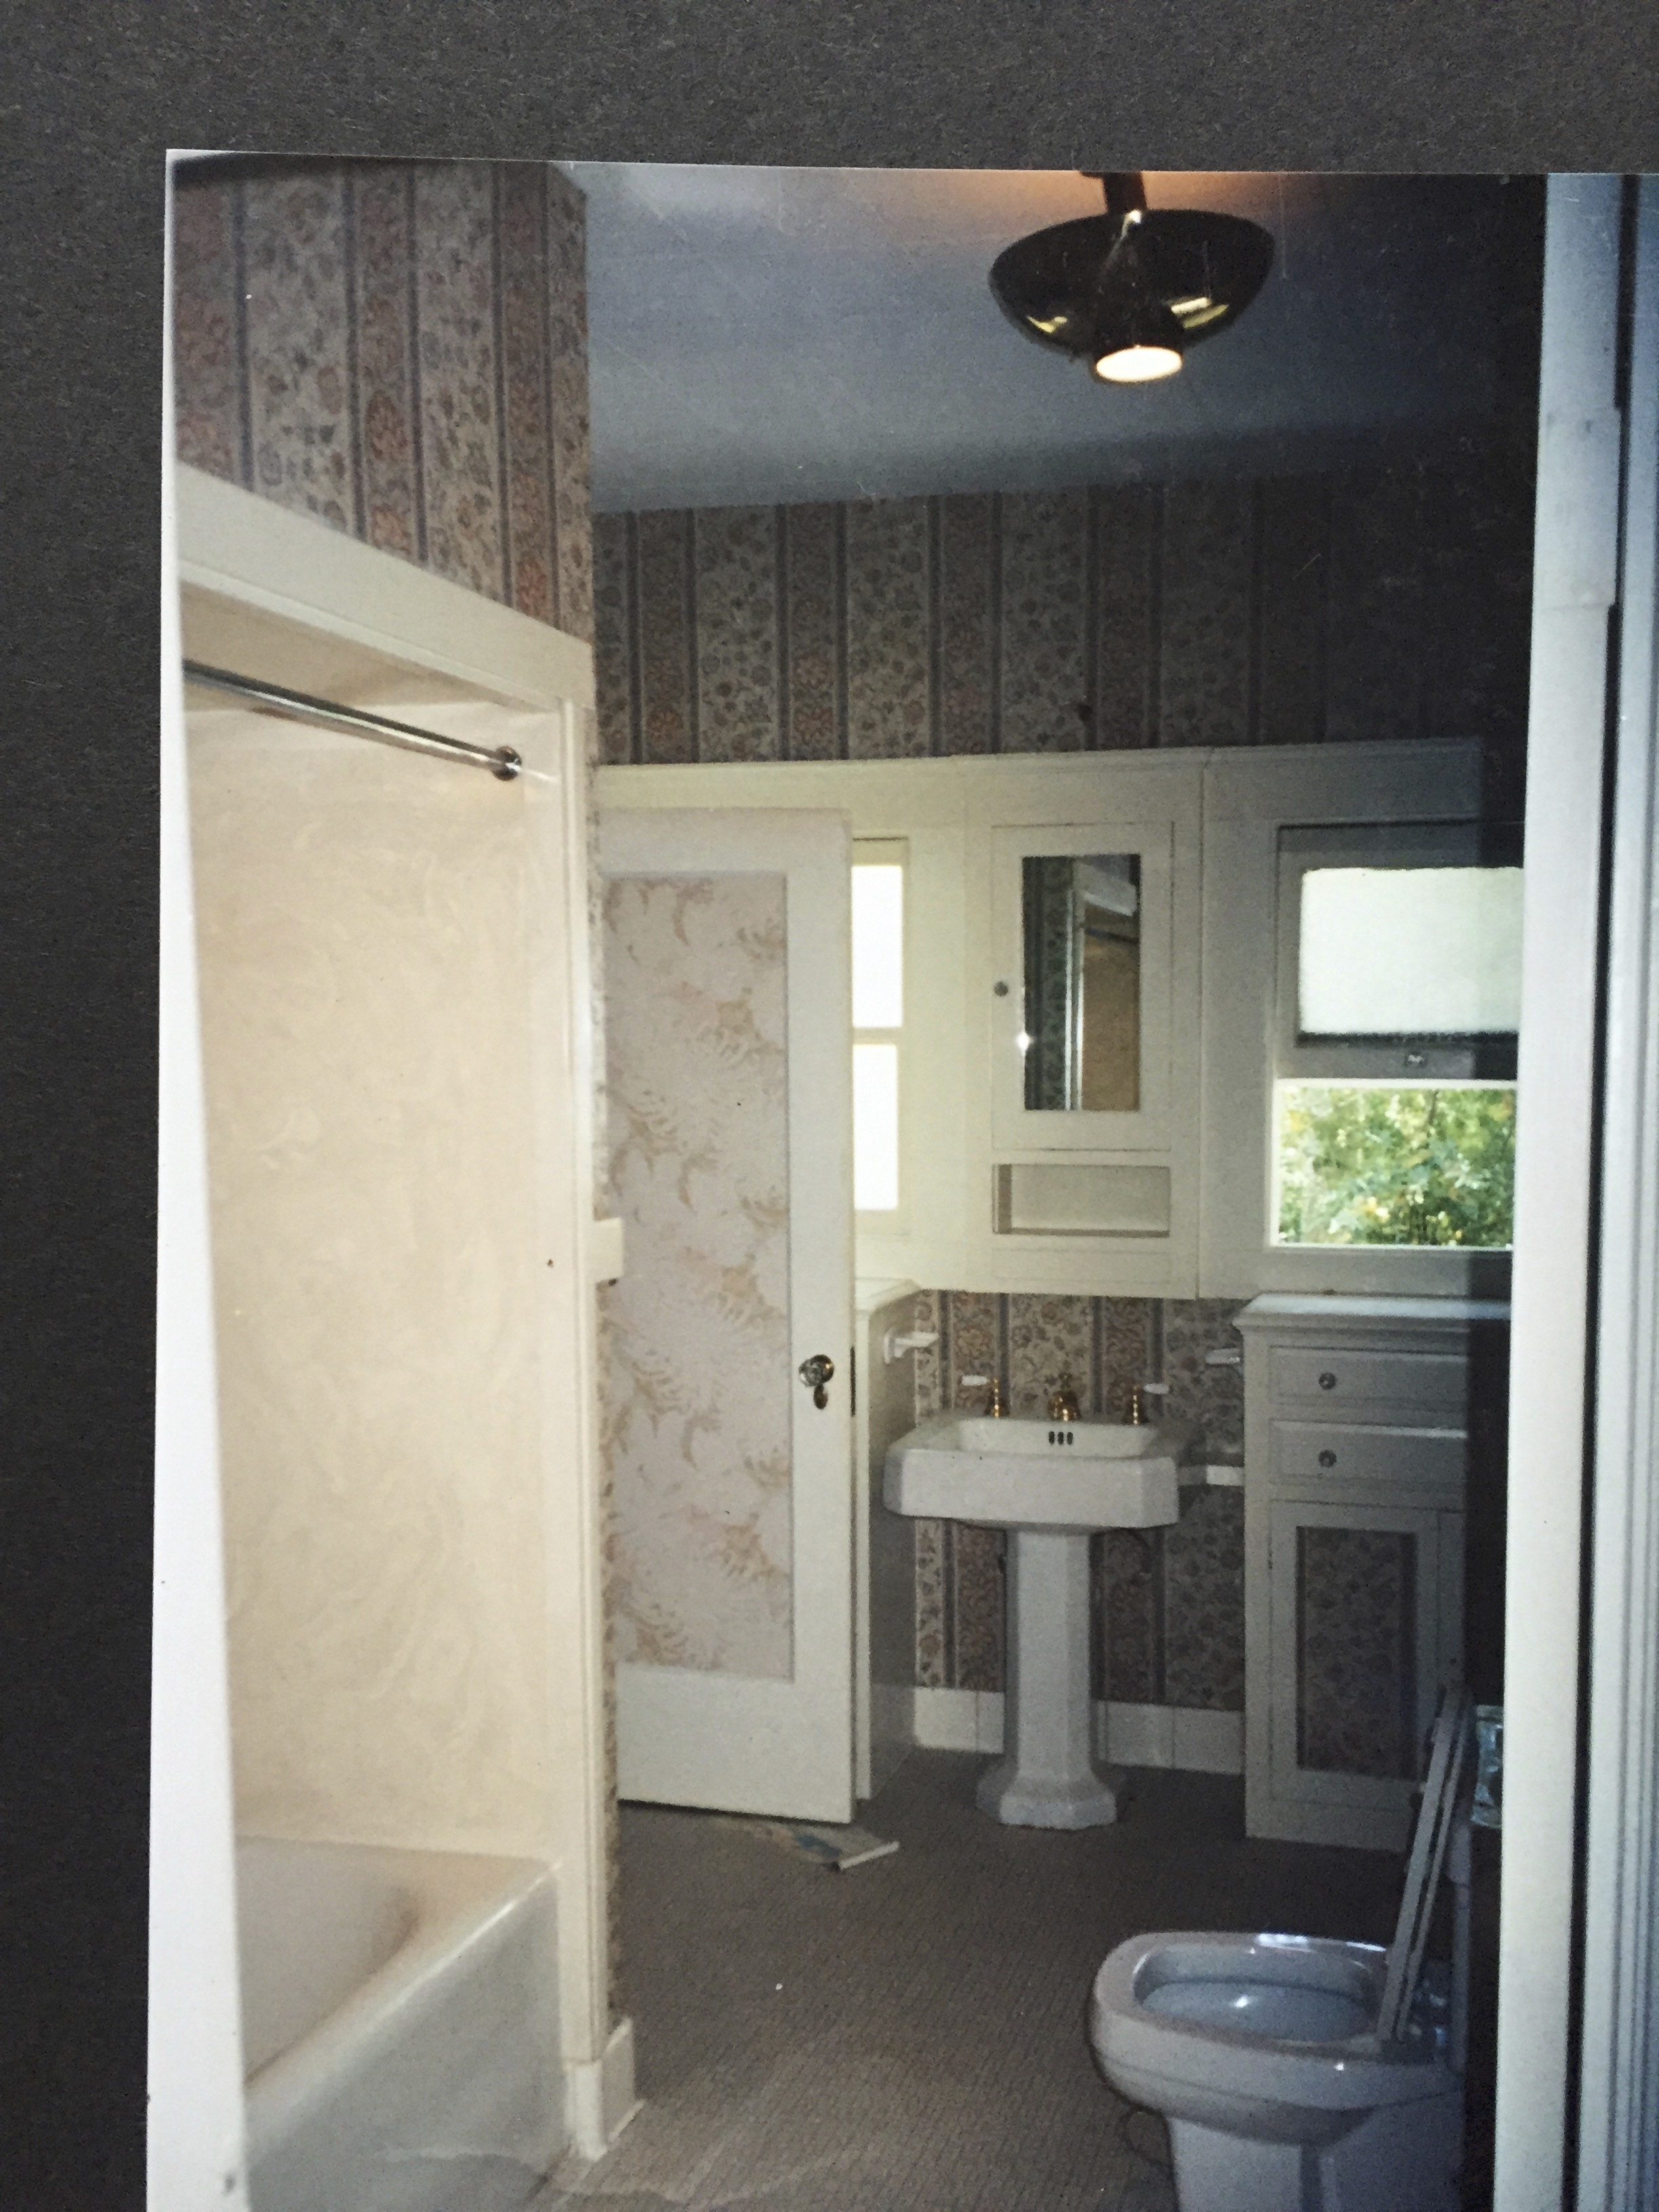 For some reason, in the old days, they would soffit down (drop the ceiling) over a shower to make it feel more cozy? Retain the heat?